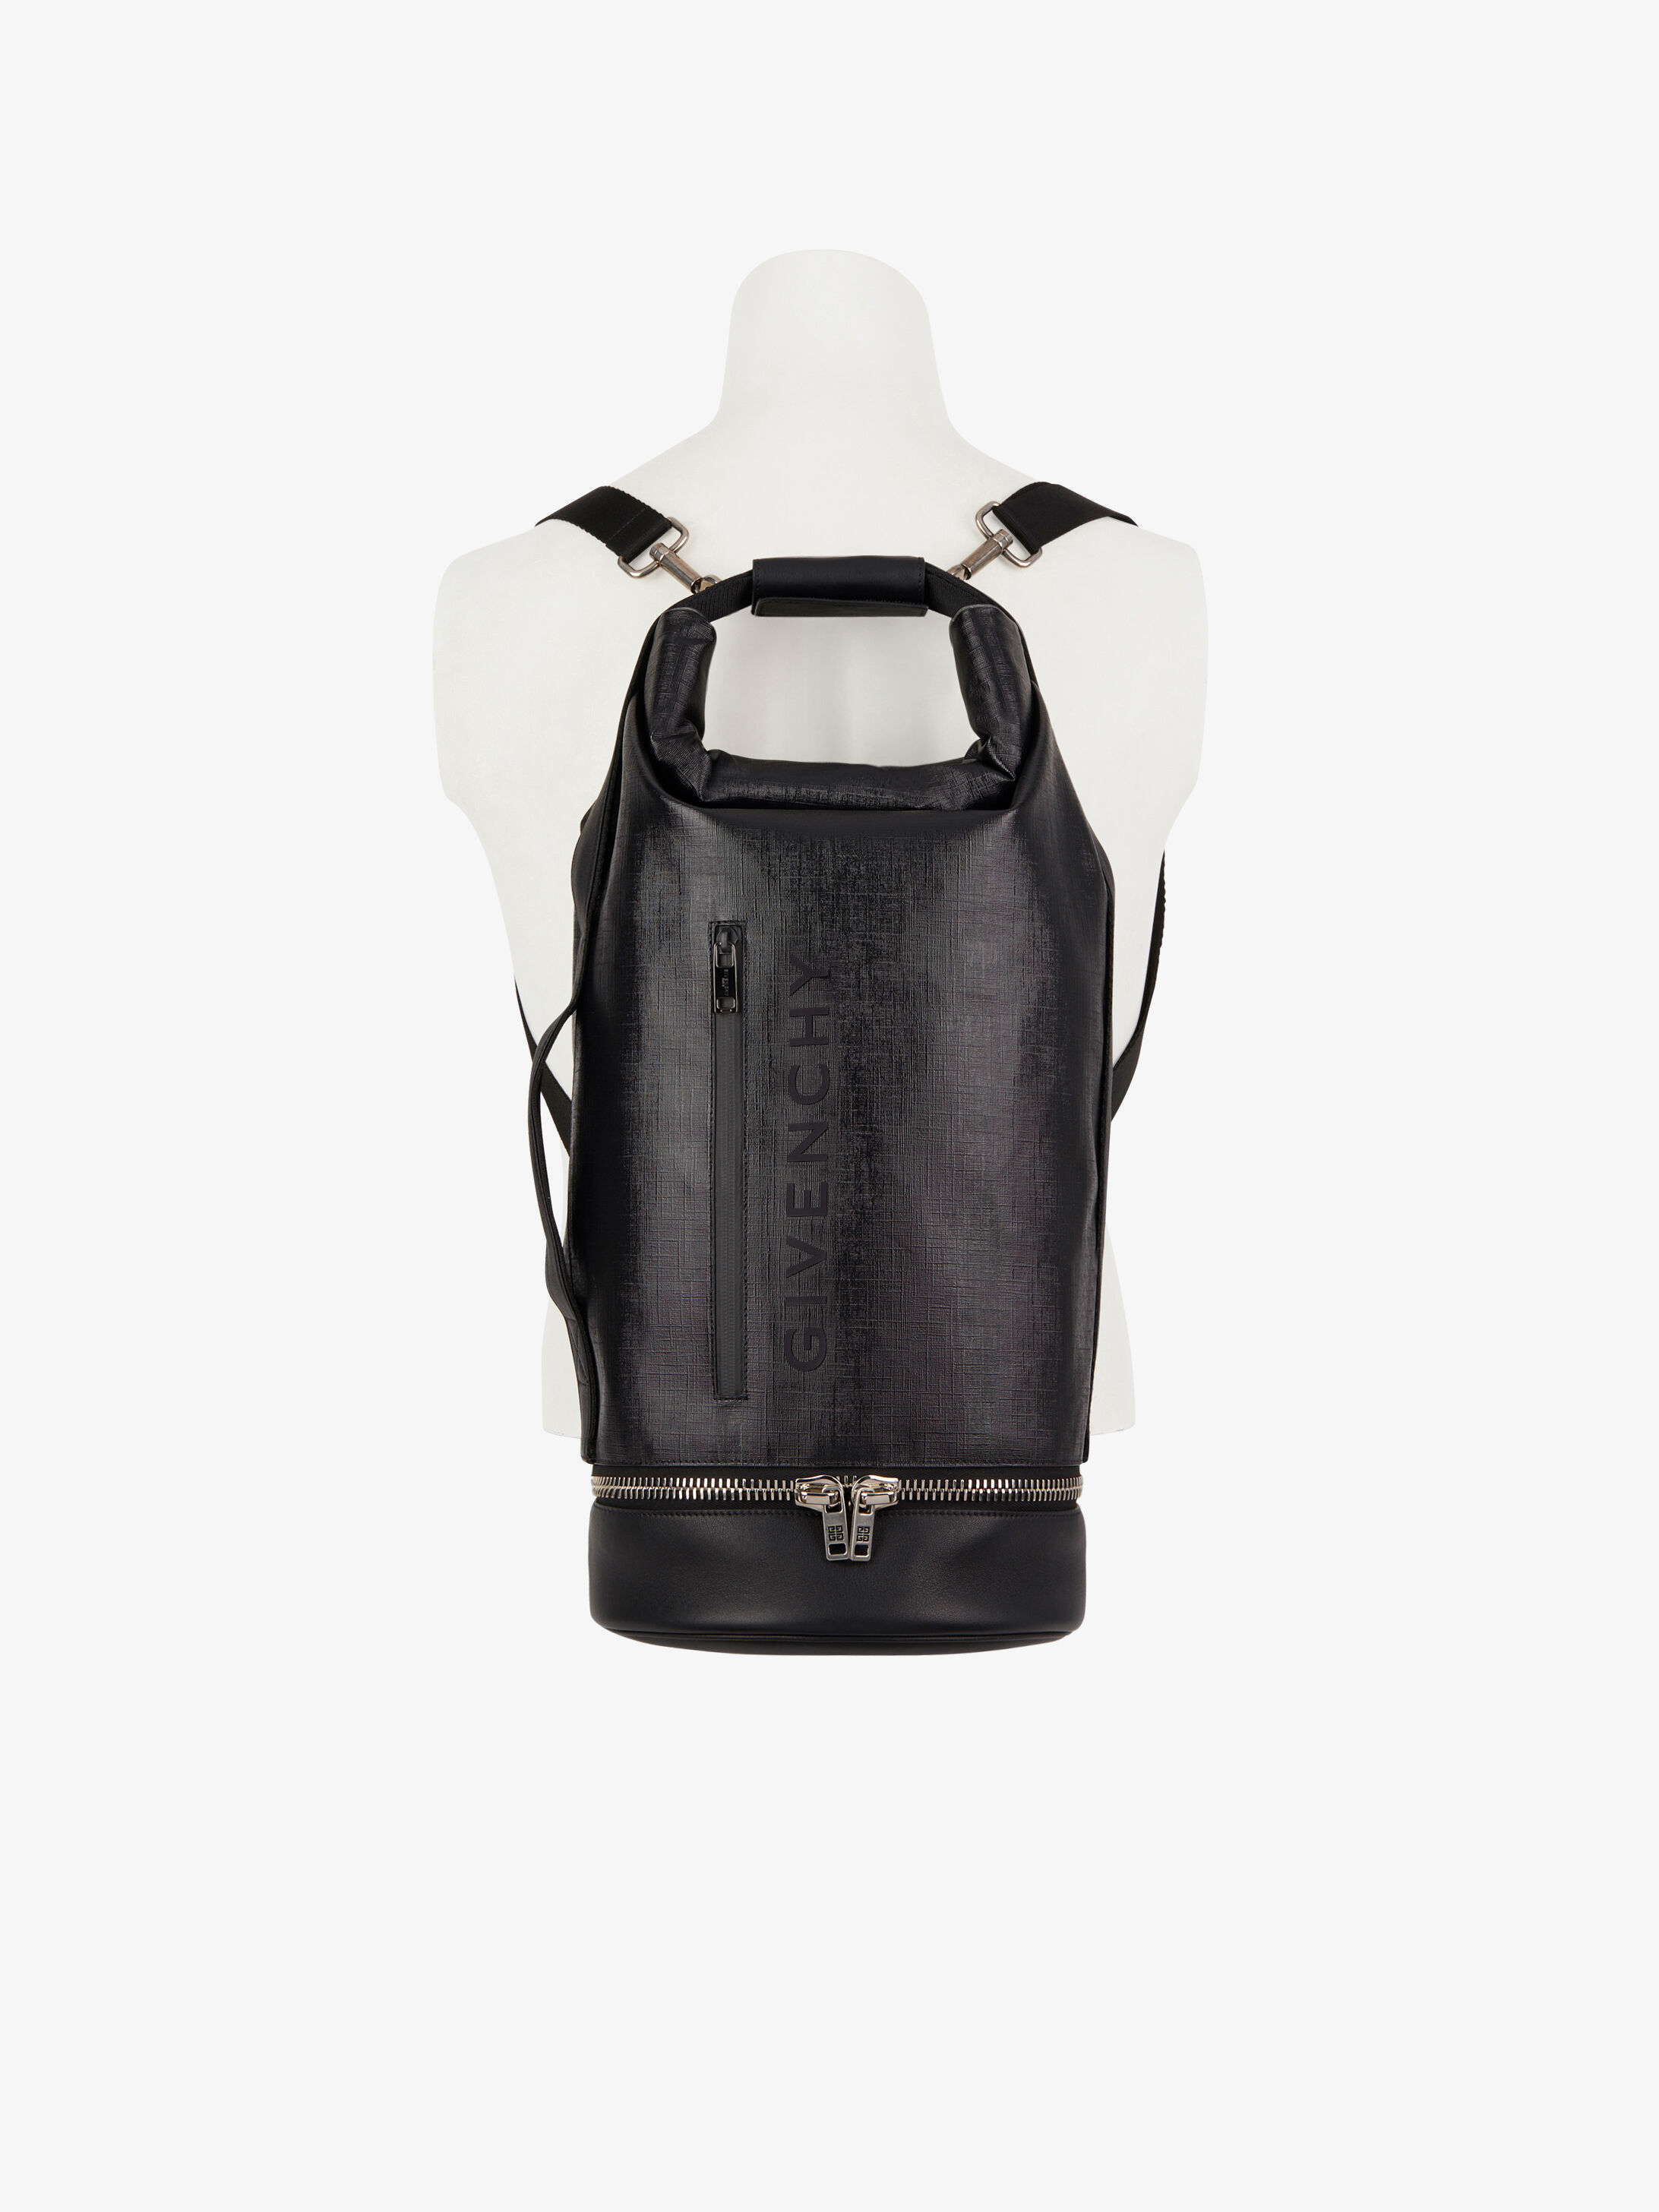 204e0f7936f2 Men s Cross-body Bags collection by Givenchy.